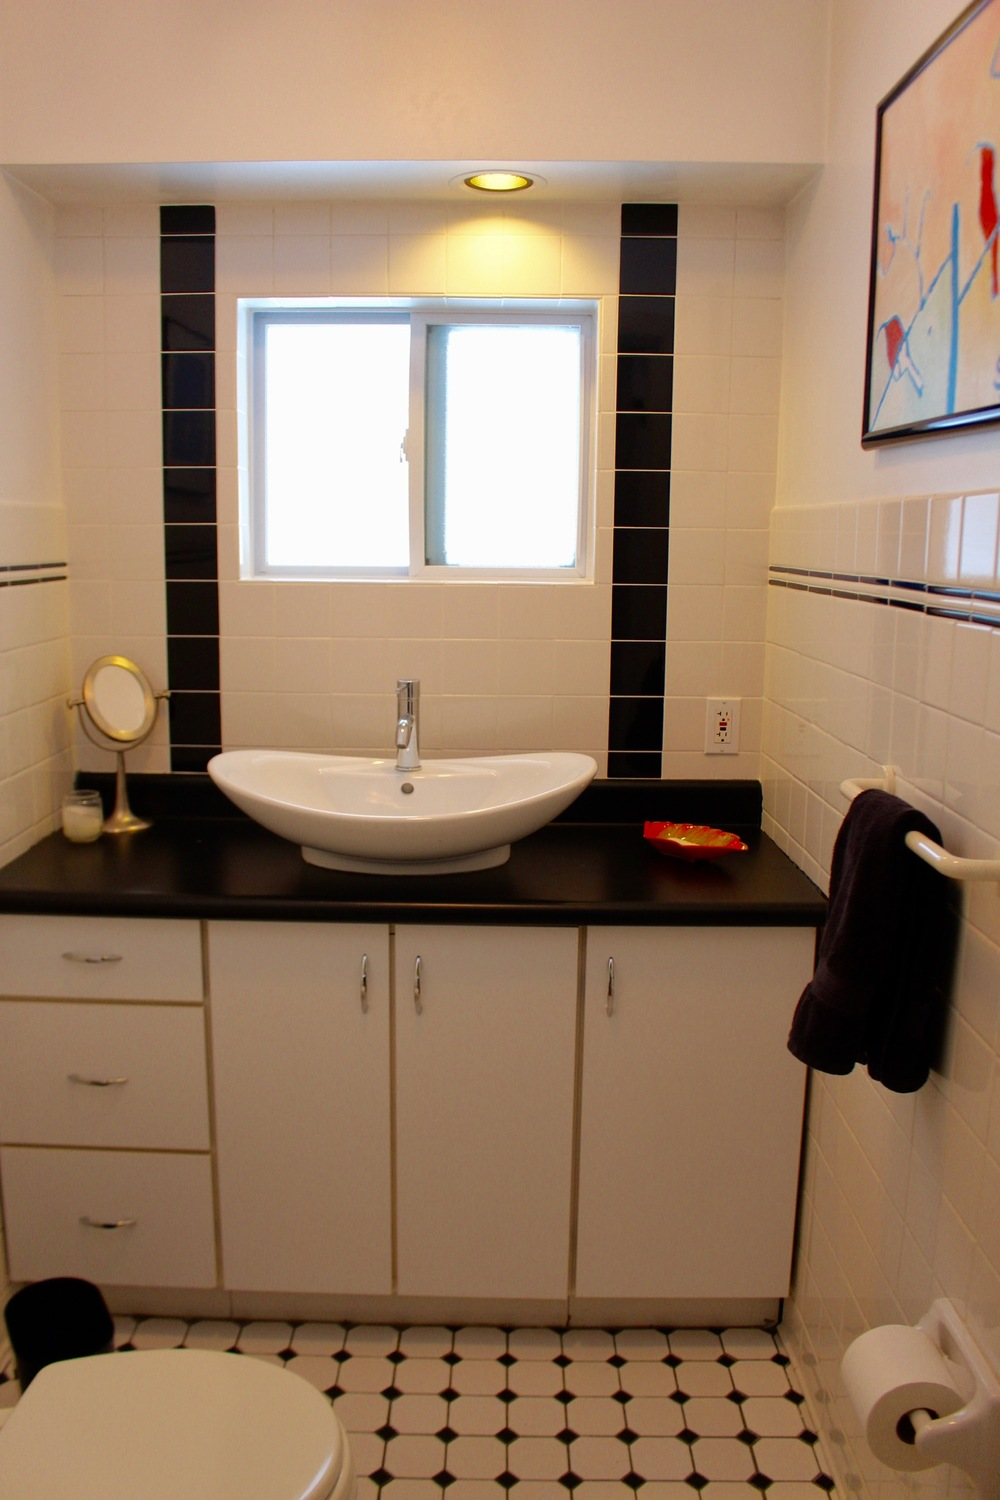 Guest bath near the kitchen